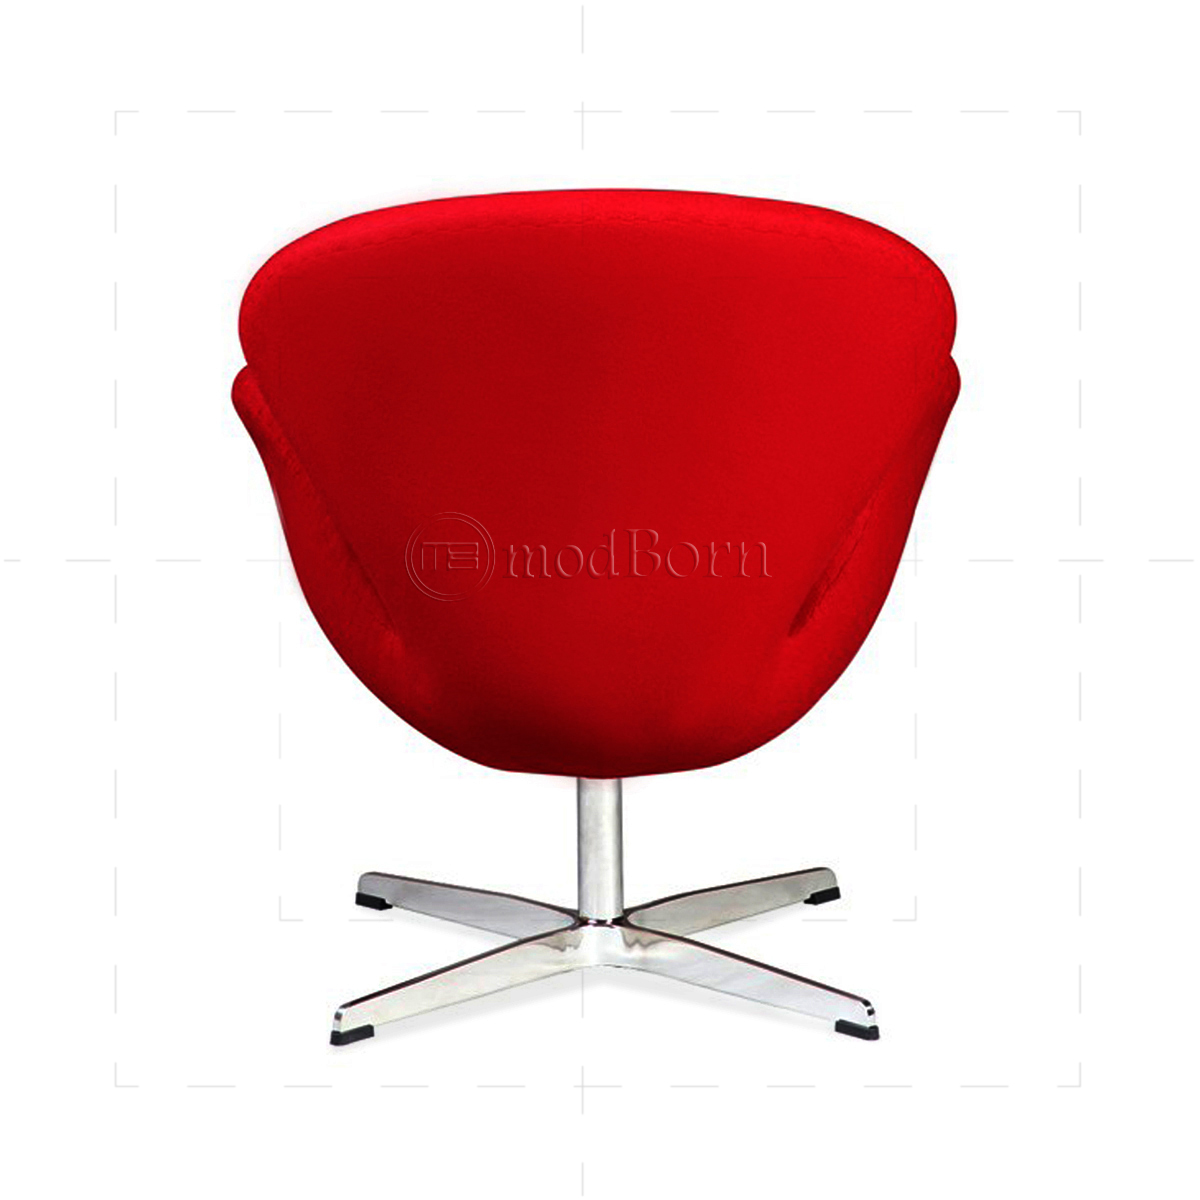 Arne jacobsen style swan chair red cashmere wool replica for Arne jacobsen stehlampe replica